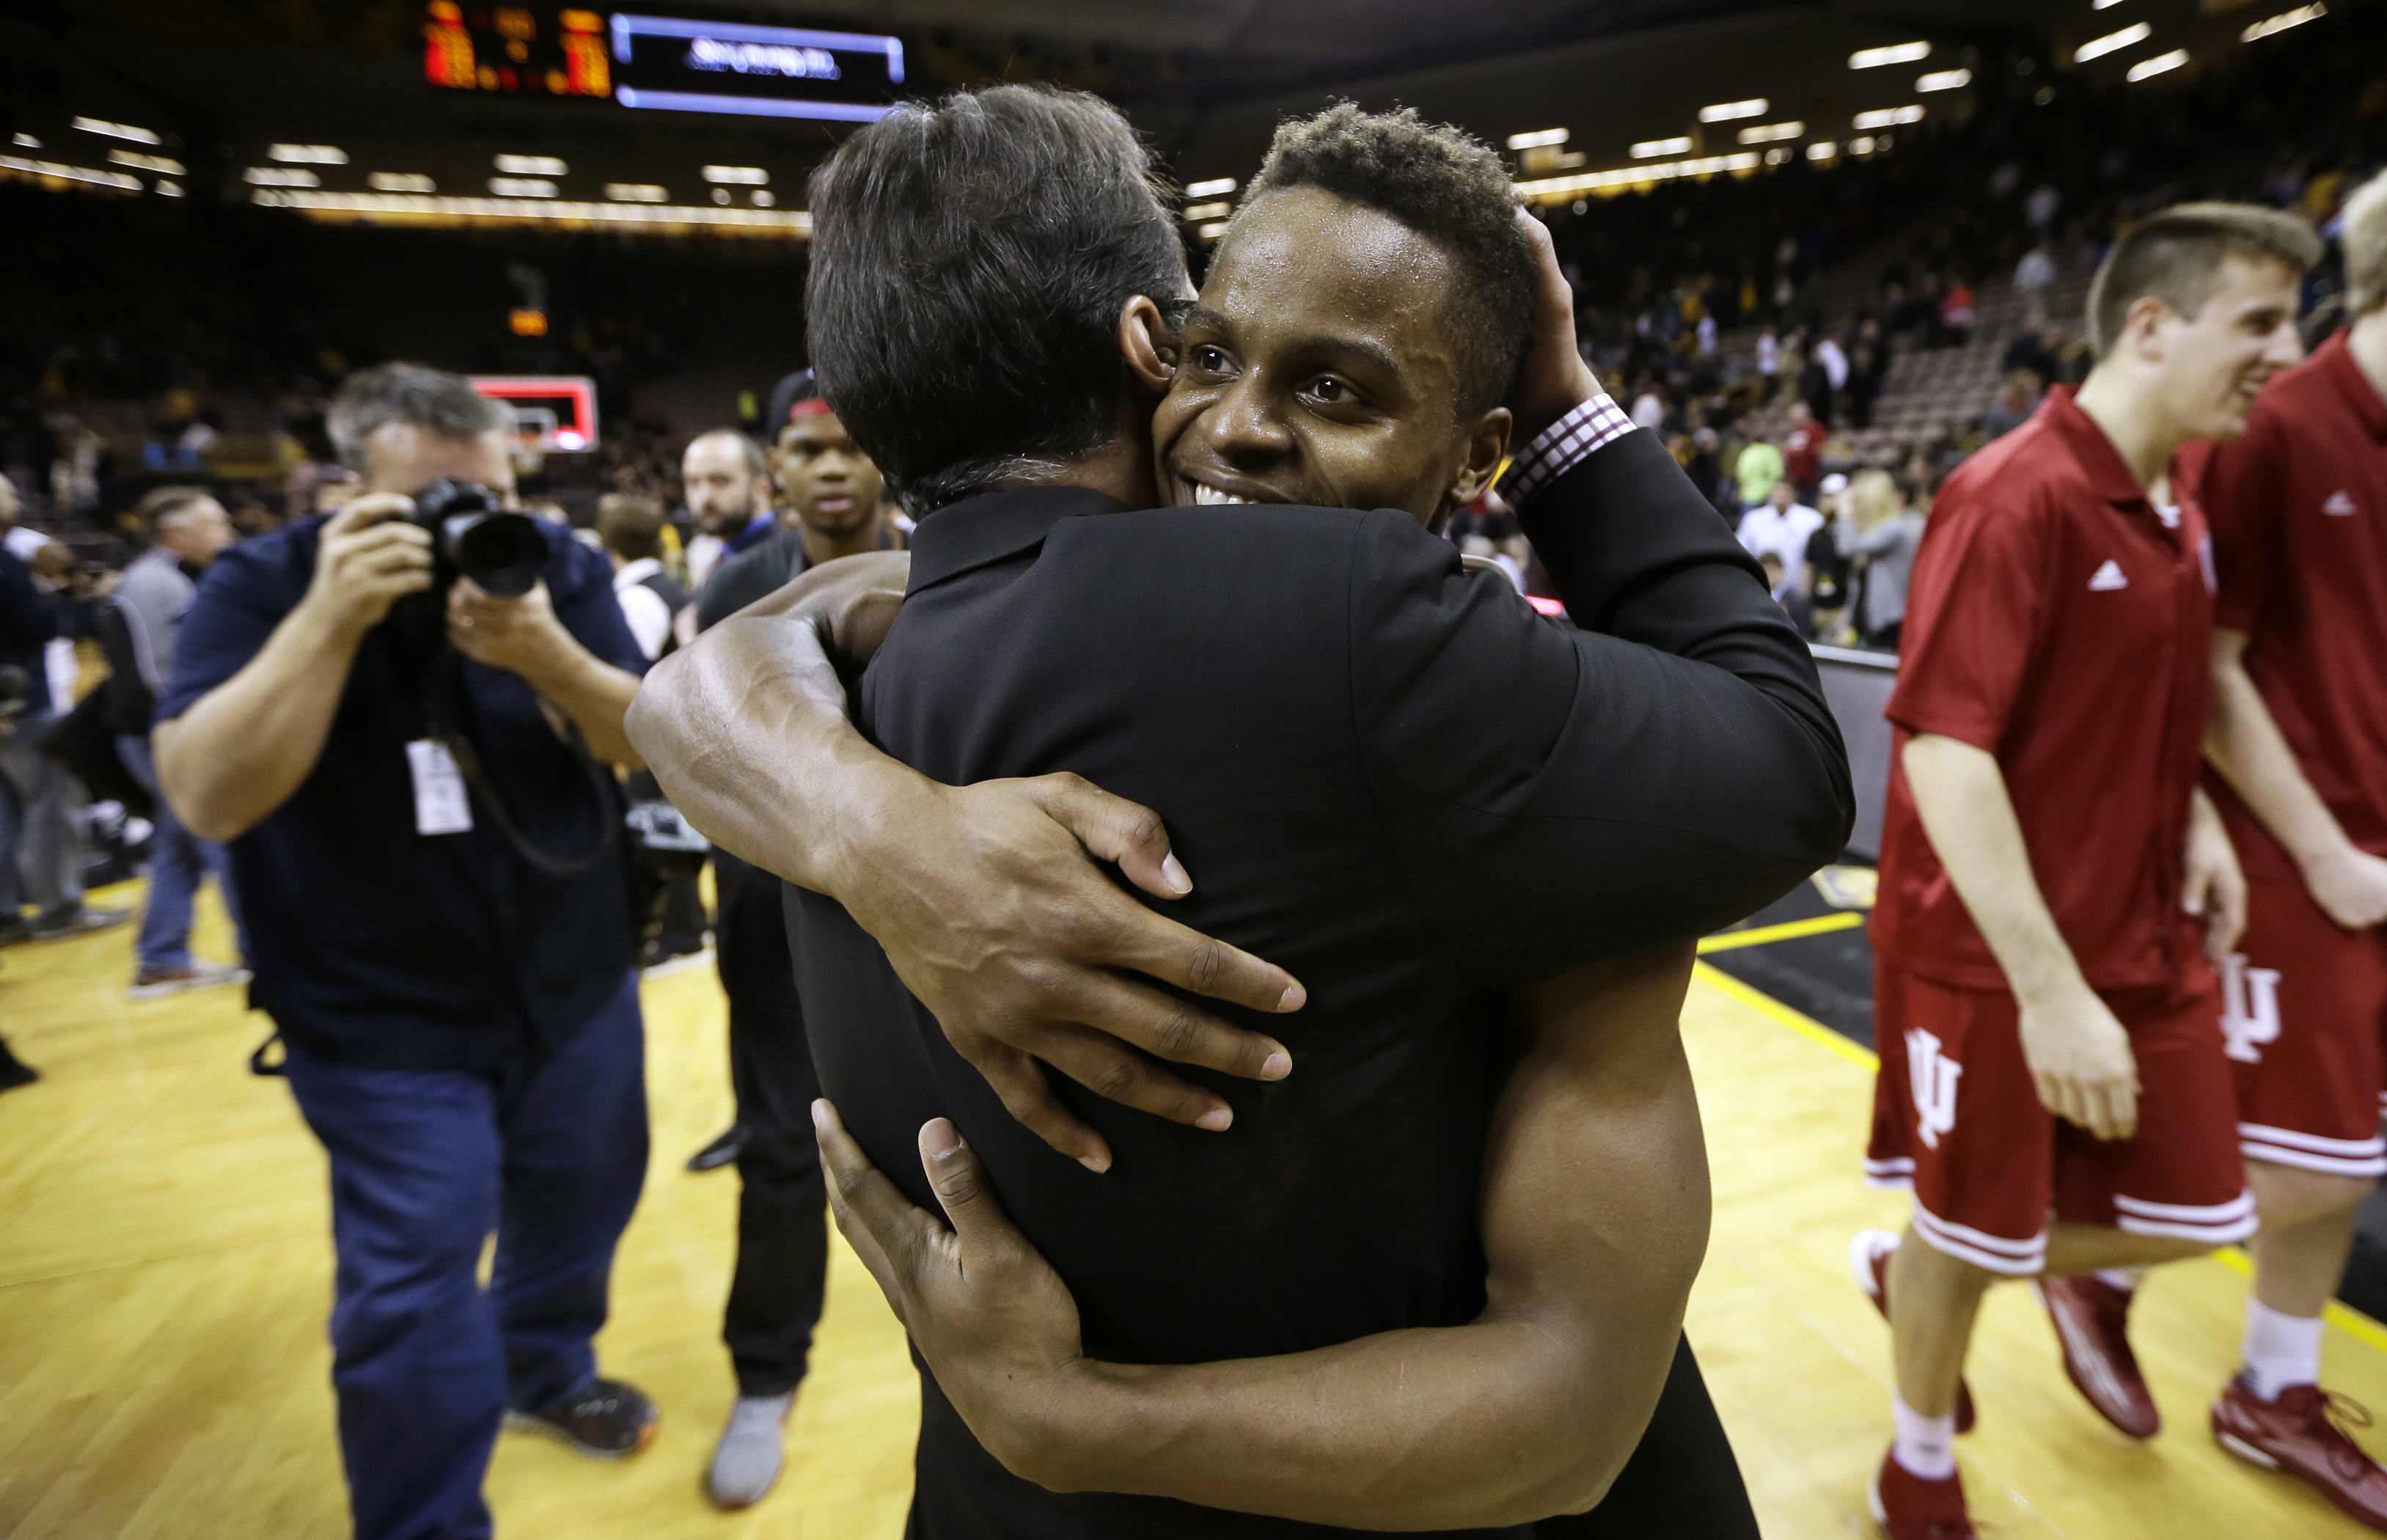 Indiana guard Yogi Ferrell gets a hug from coach Tom Crean, left, after the team's NCAA college basketball game against Iowa, Tuesday, March 1, 2016, in Iowa City, Iowa. Ferrell scored 20 points as Indiana won 81-78 and clinched the Big Ten title. (AP Photo/Charlie Neibergall)